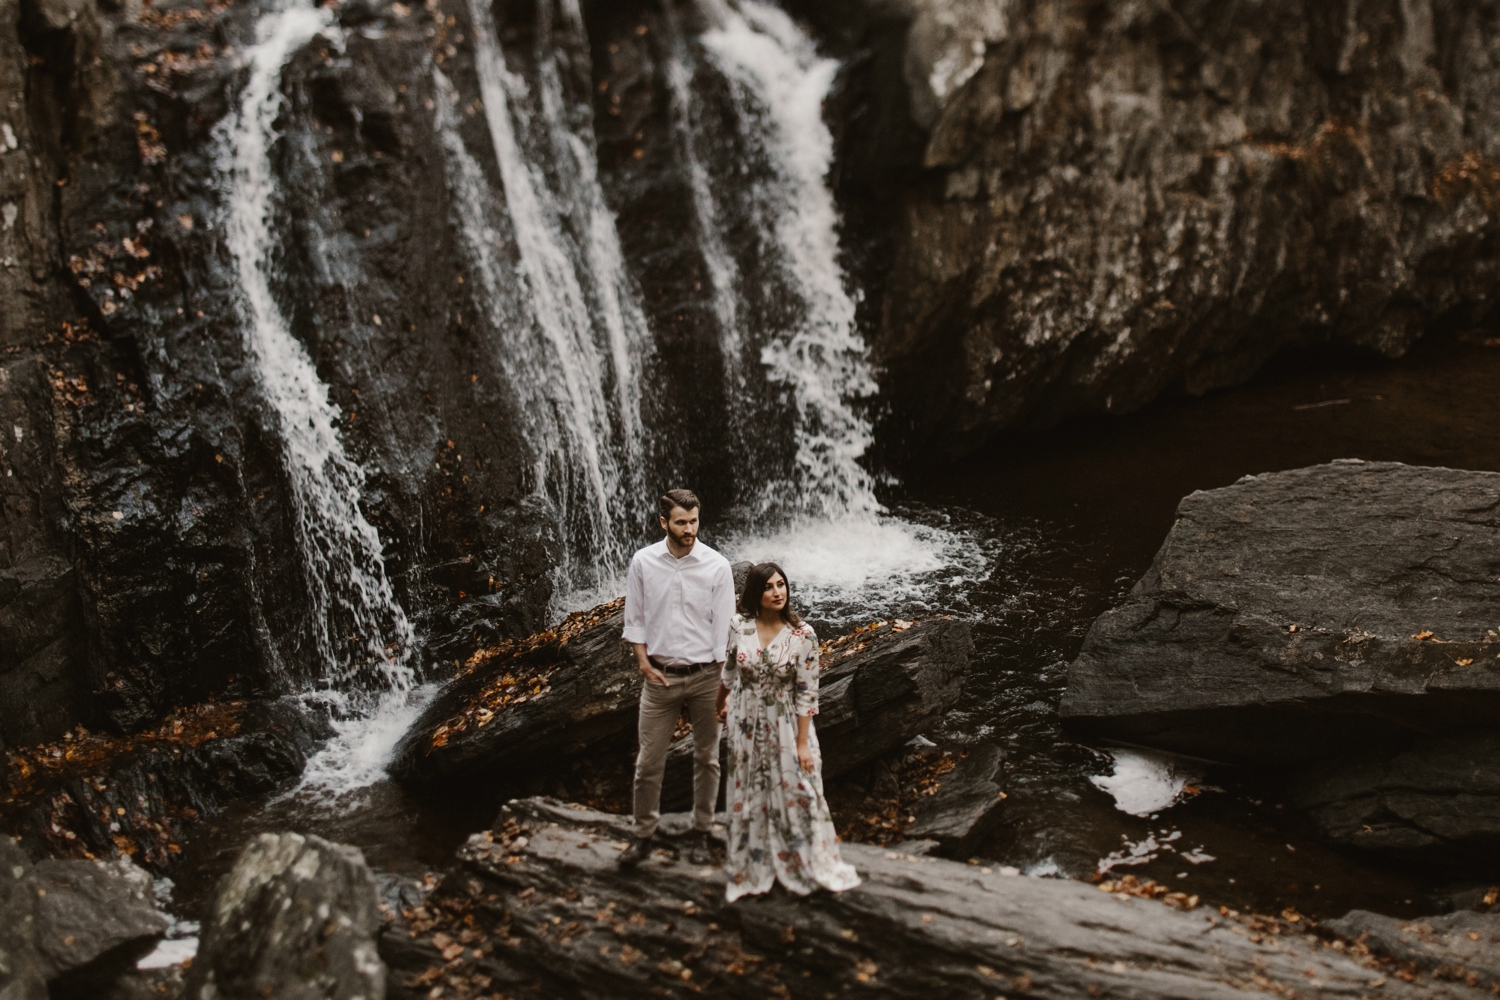 sundas-and-scotts-engagement-92_baltimore-washington-d-c-waterfall-kilgore-engagement-session-maxi-dress-earthy-maryland-wedding-photographer-kate-ann-photography-phot